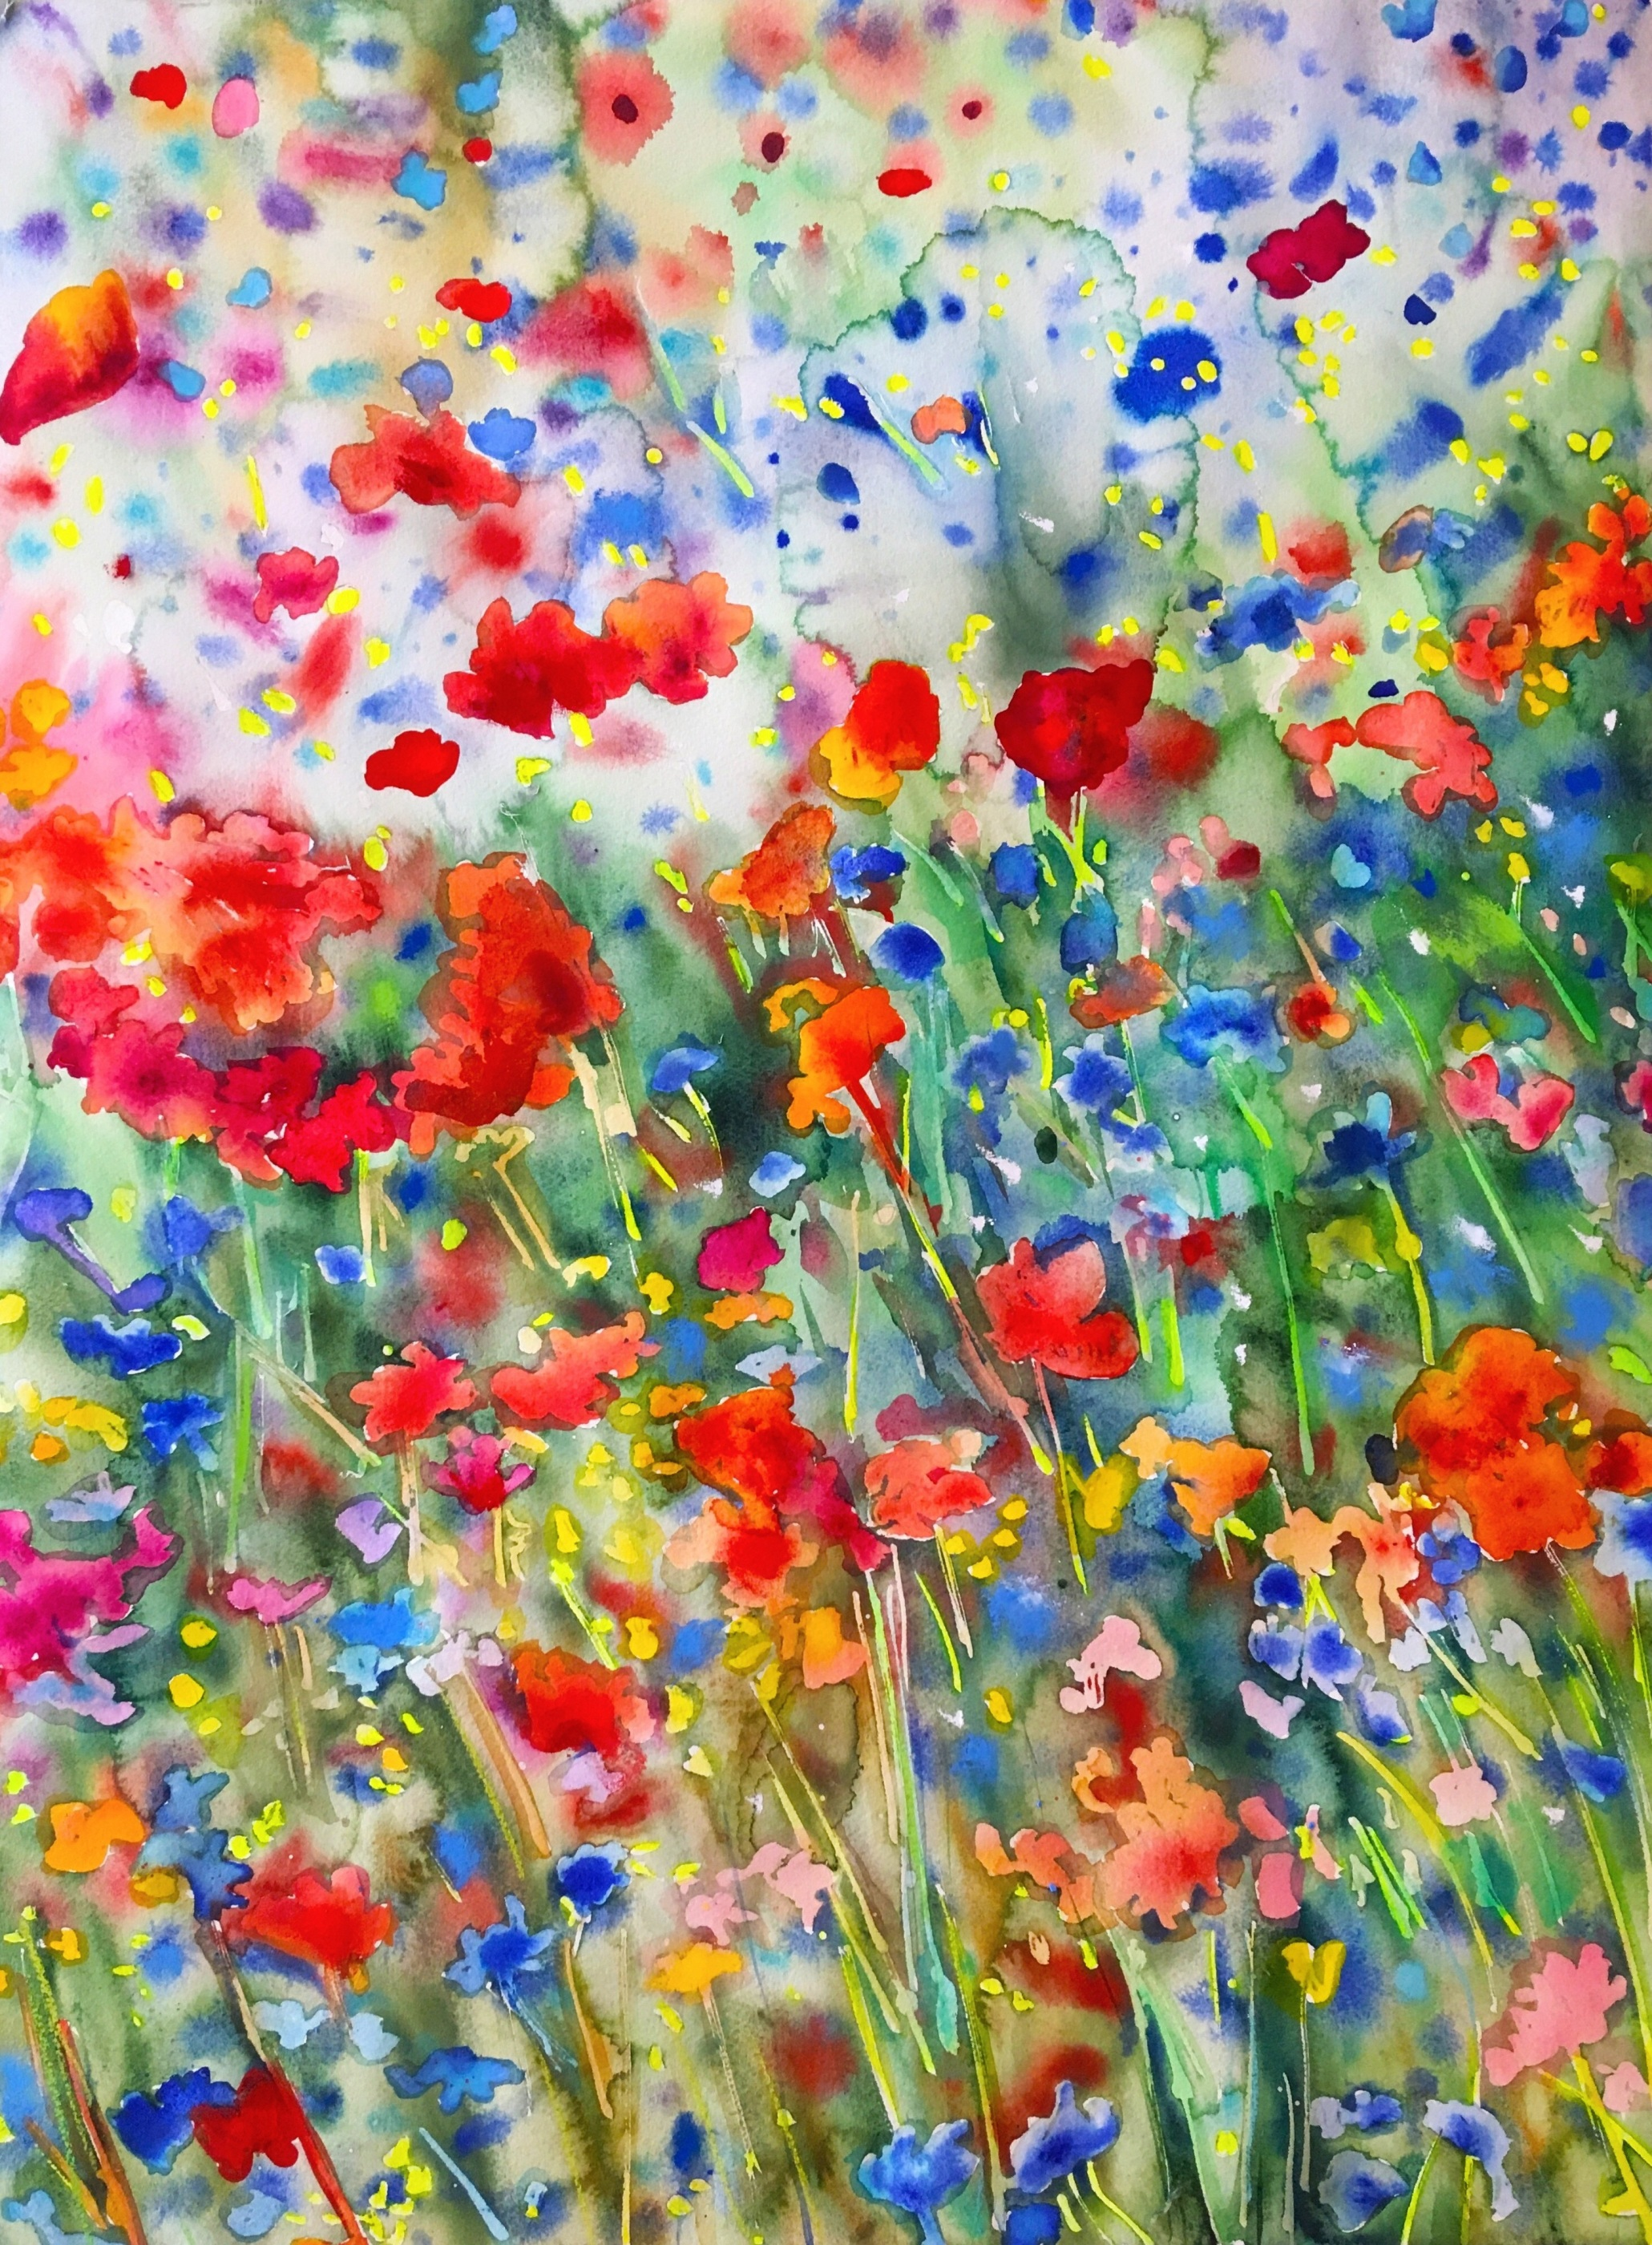 Watercolor Paintings Flowers Art By Afzelius Alm Art Swedish